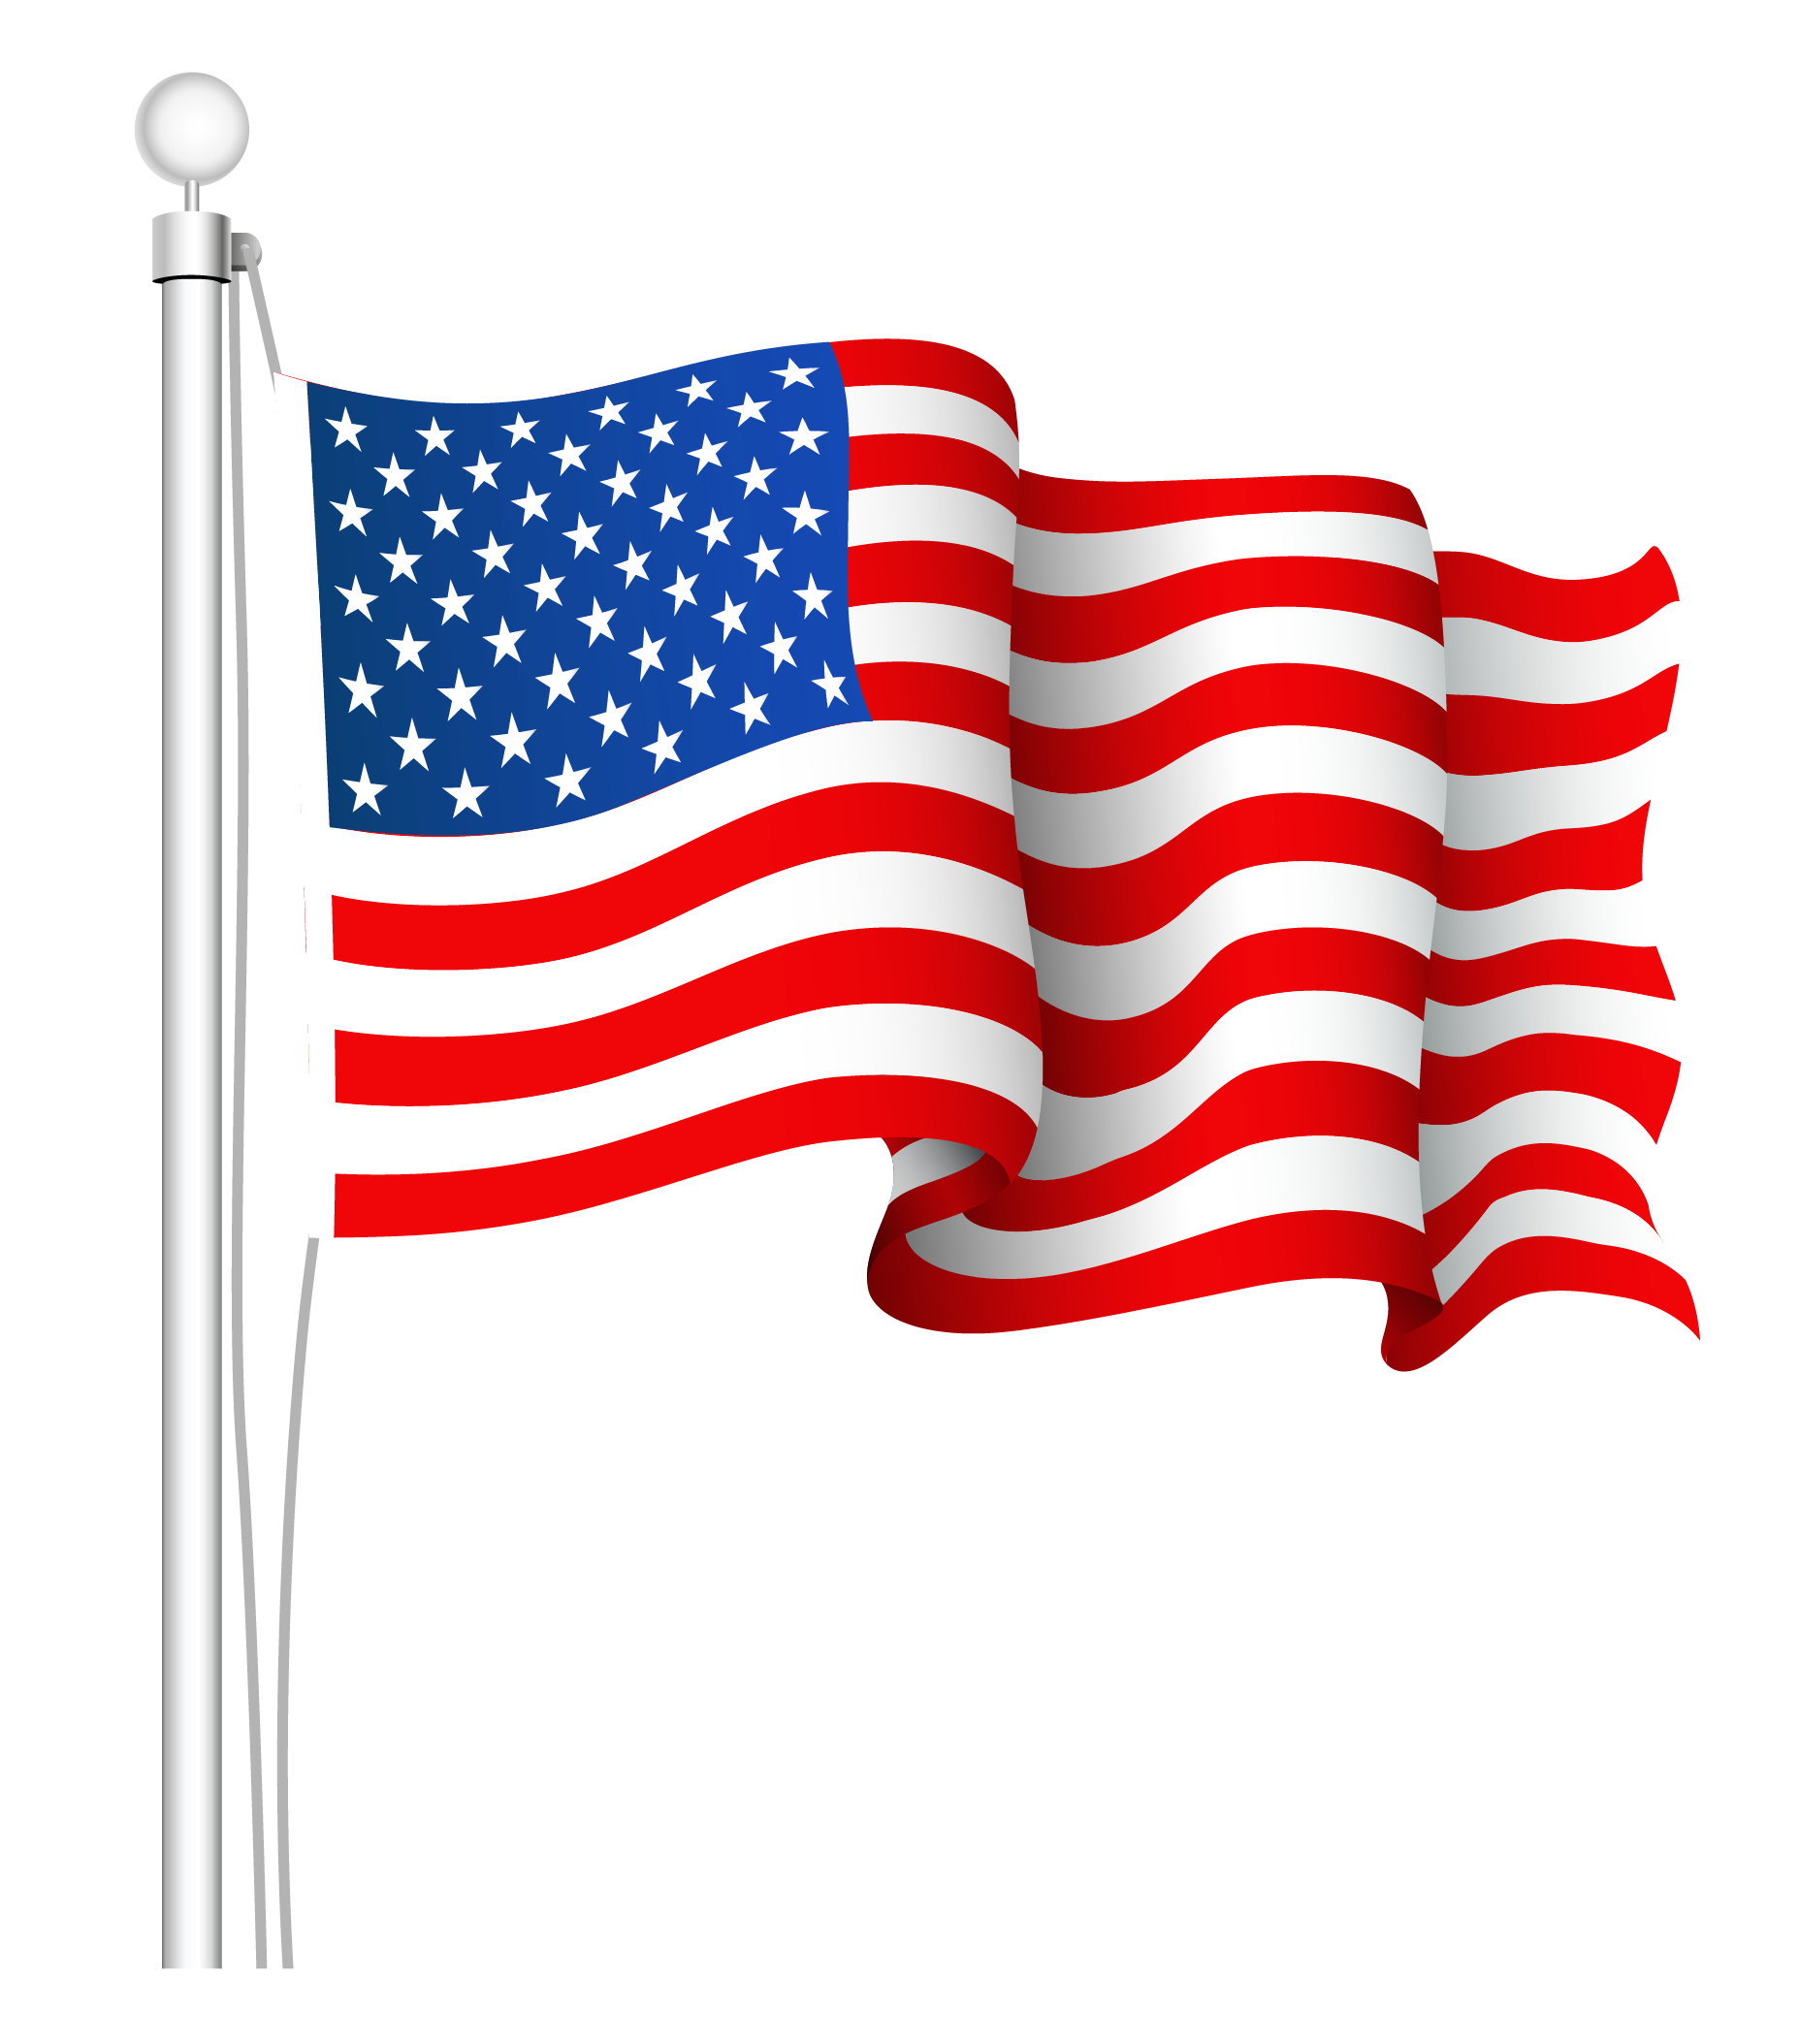 American flag clip art png. United states clipart picture